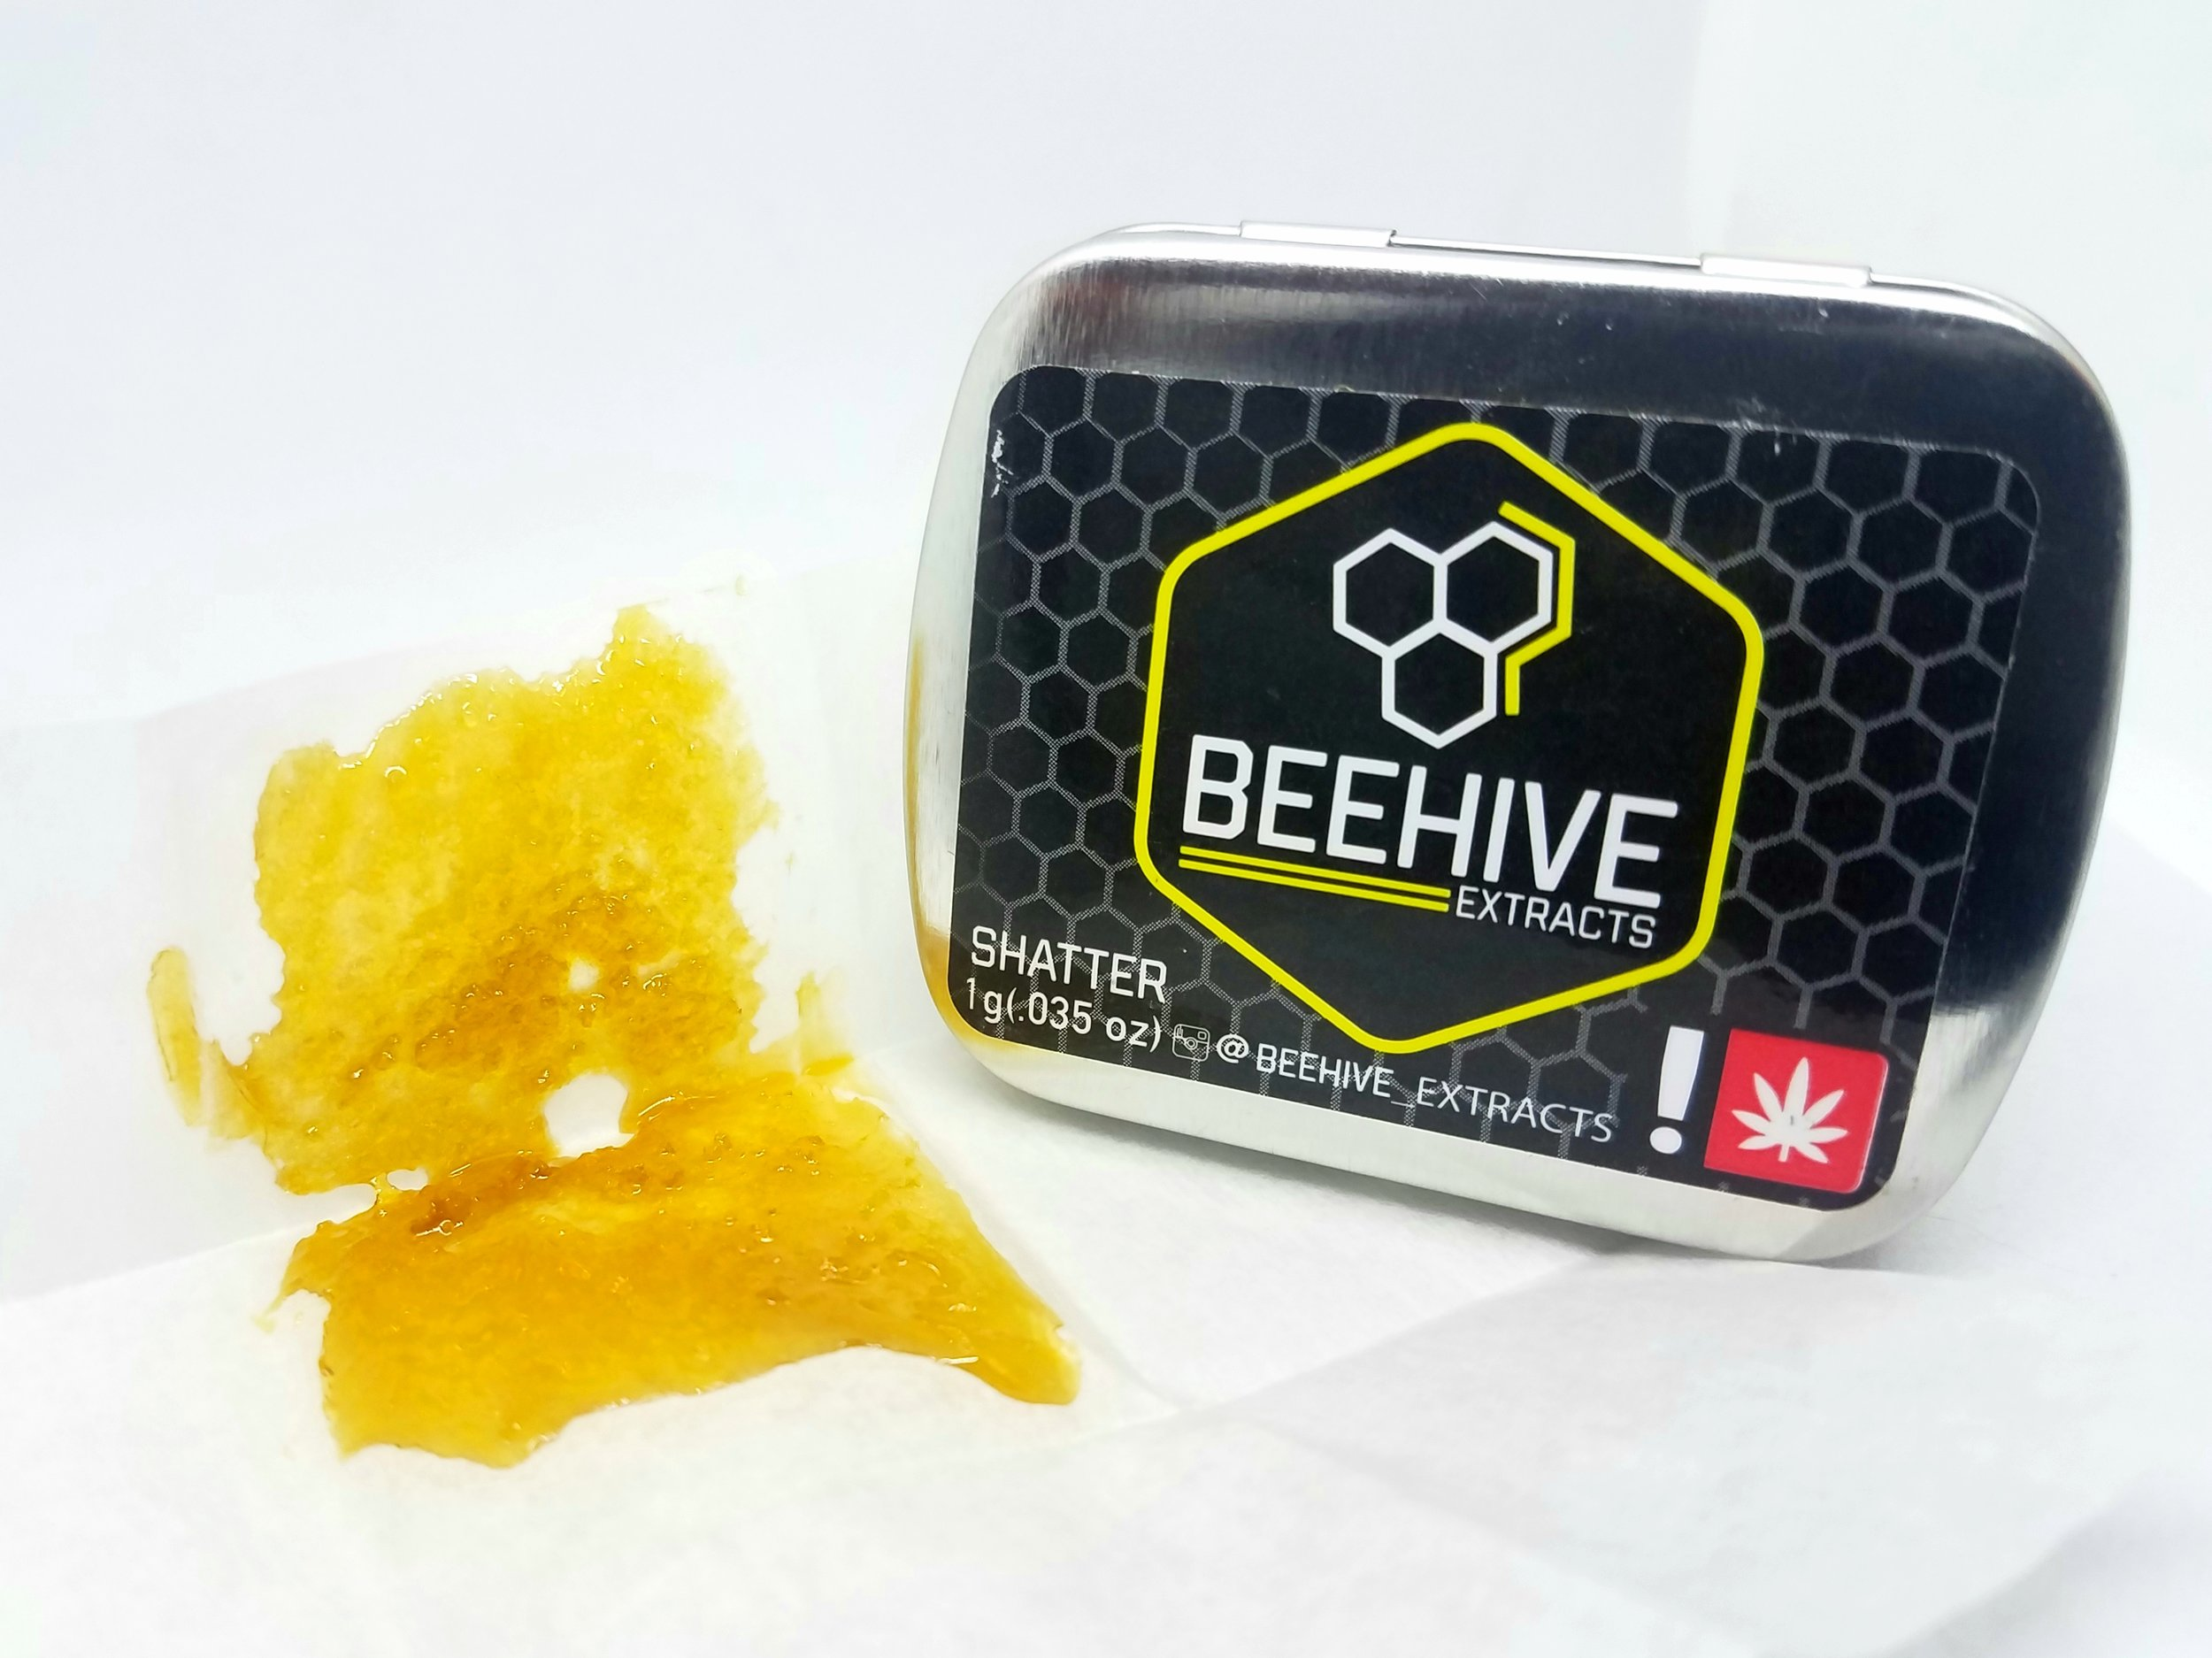 Banner #5 produced by Beehive Extracts